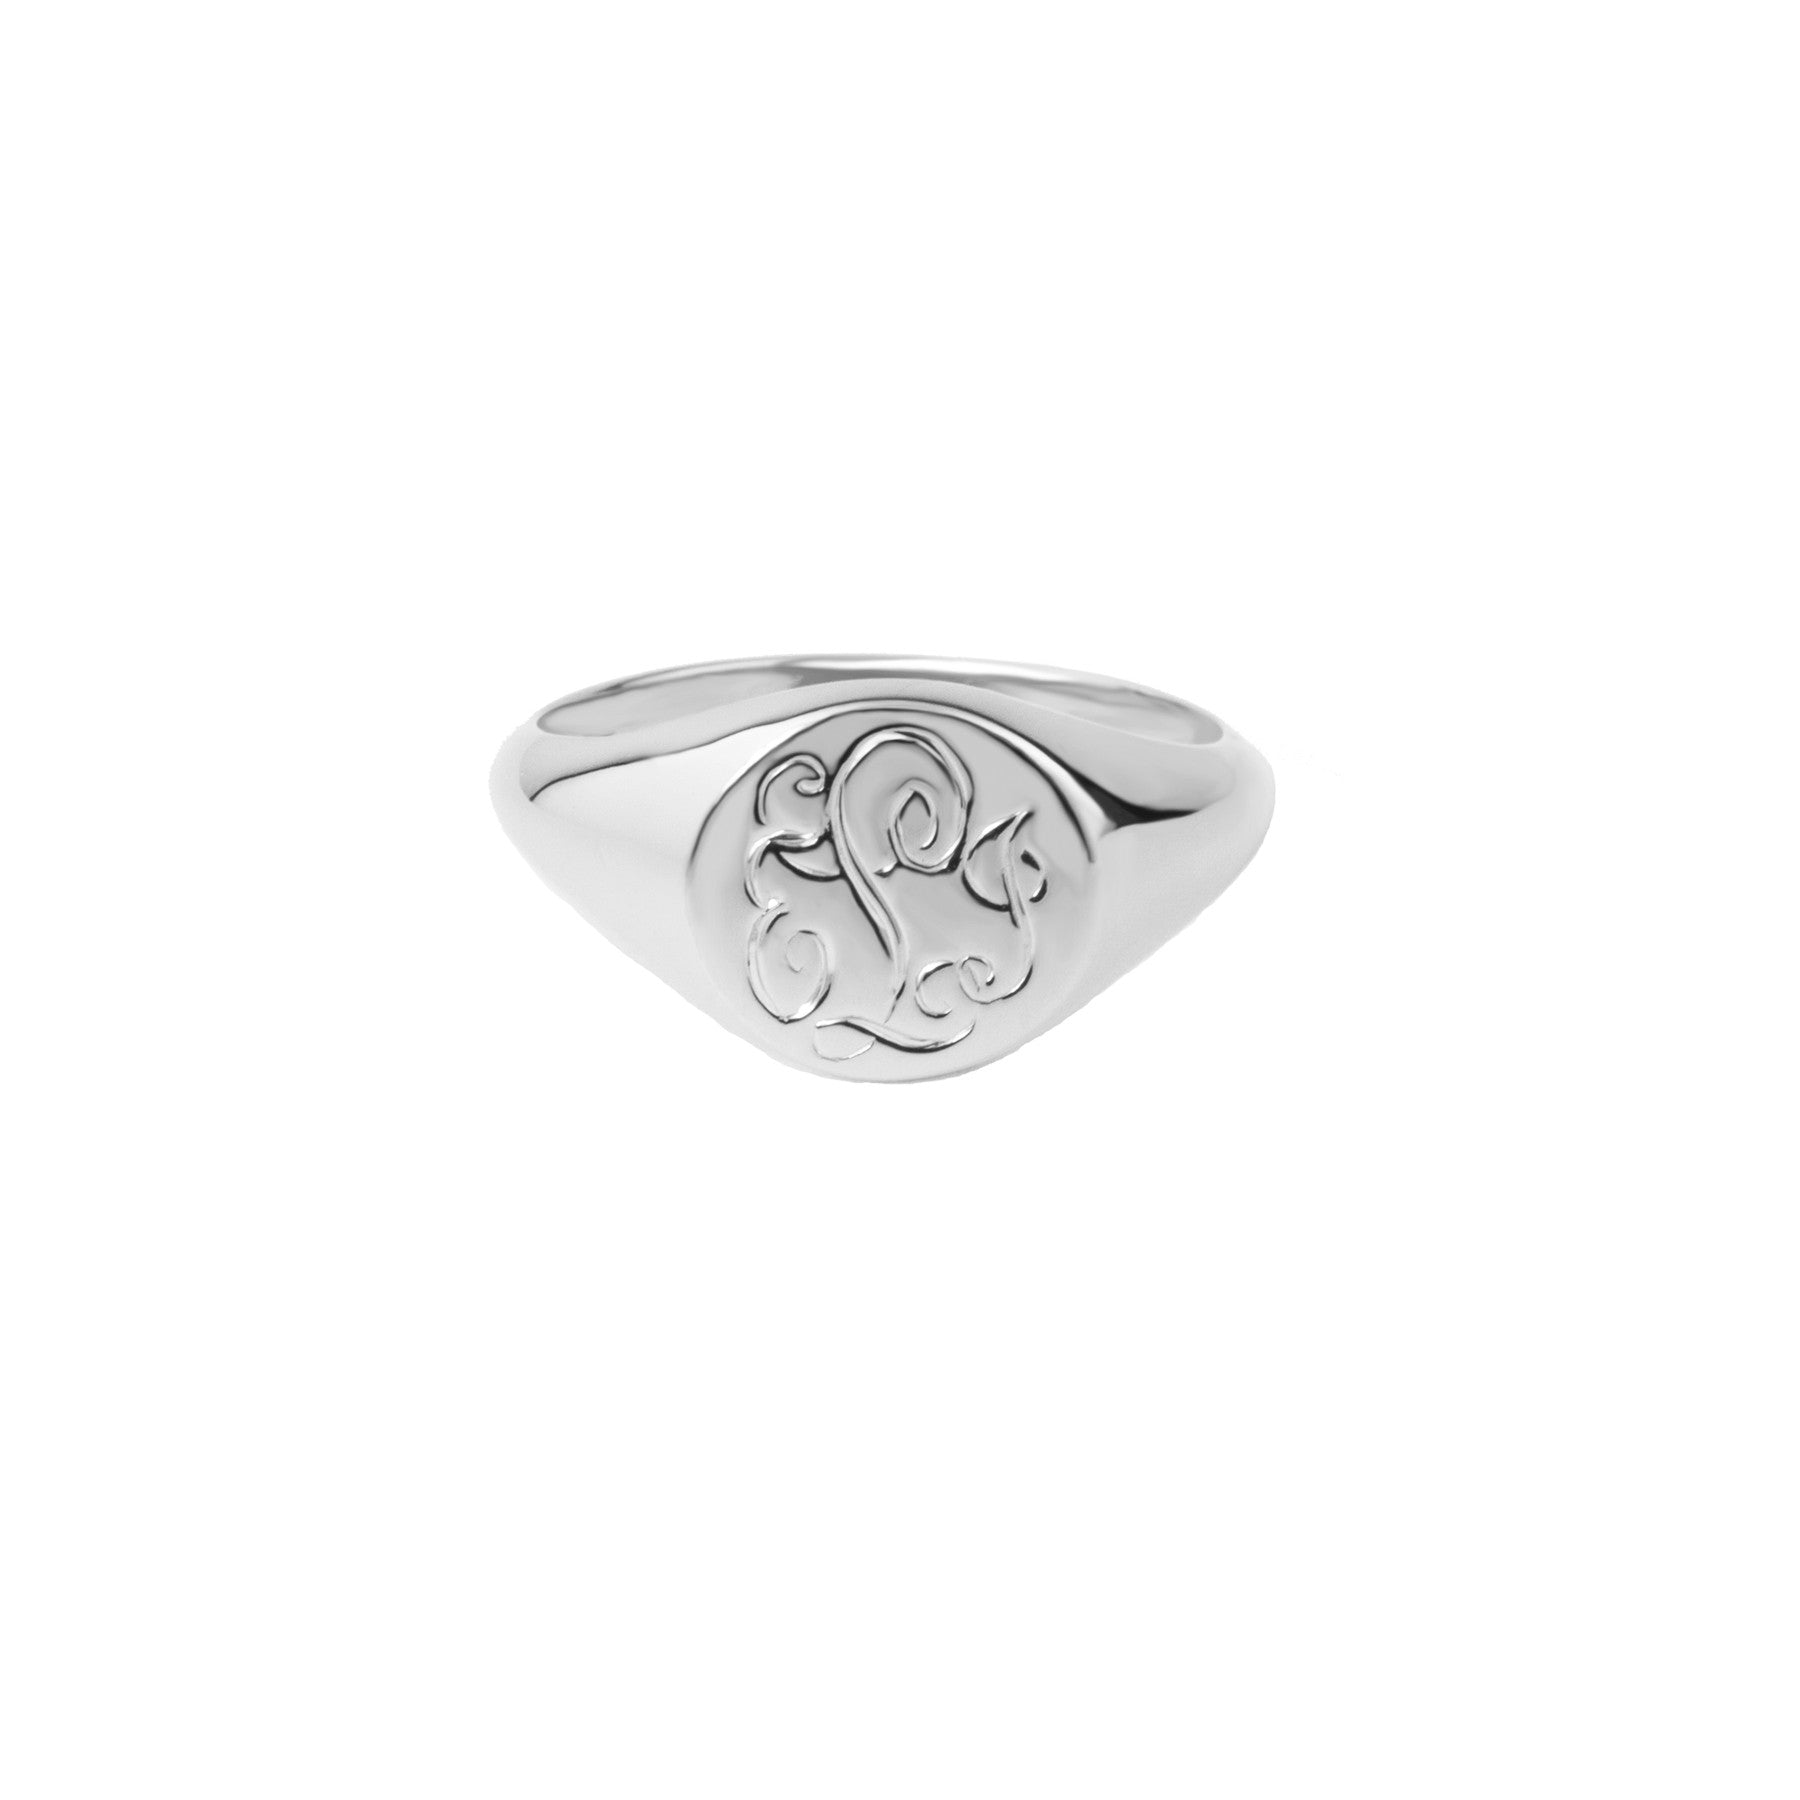 CLASSIC SIGNET RING STERLING SILVER